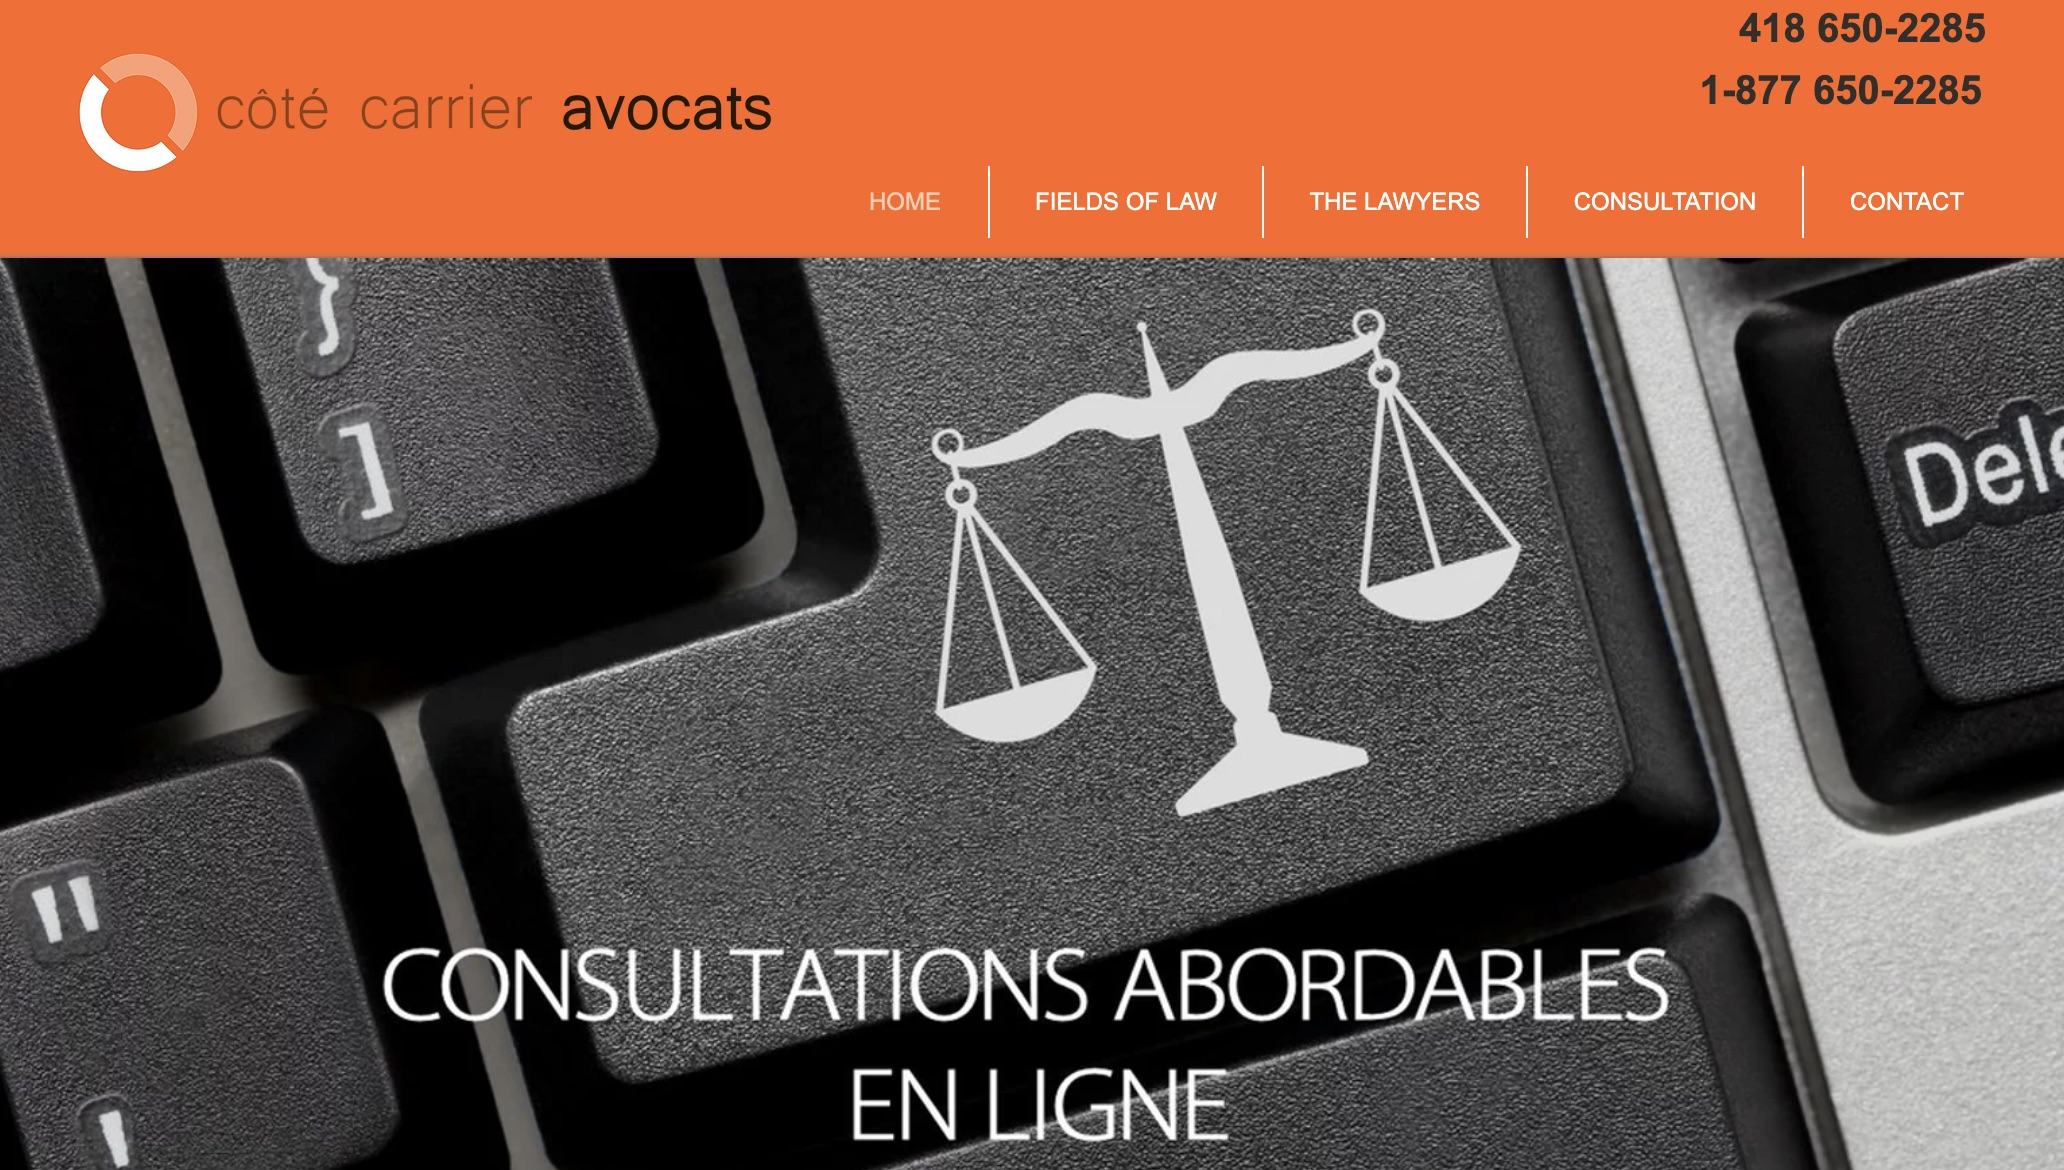 Cote Carrier Avocats